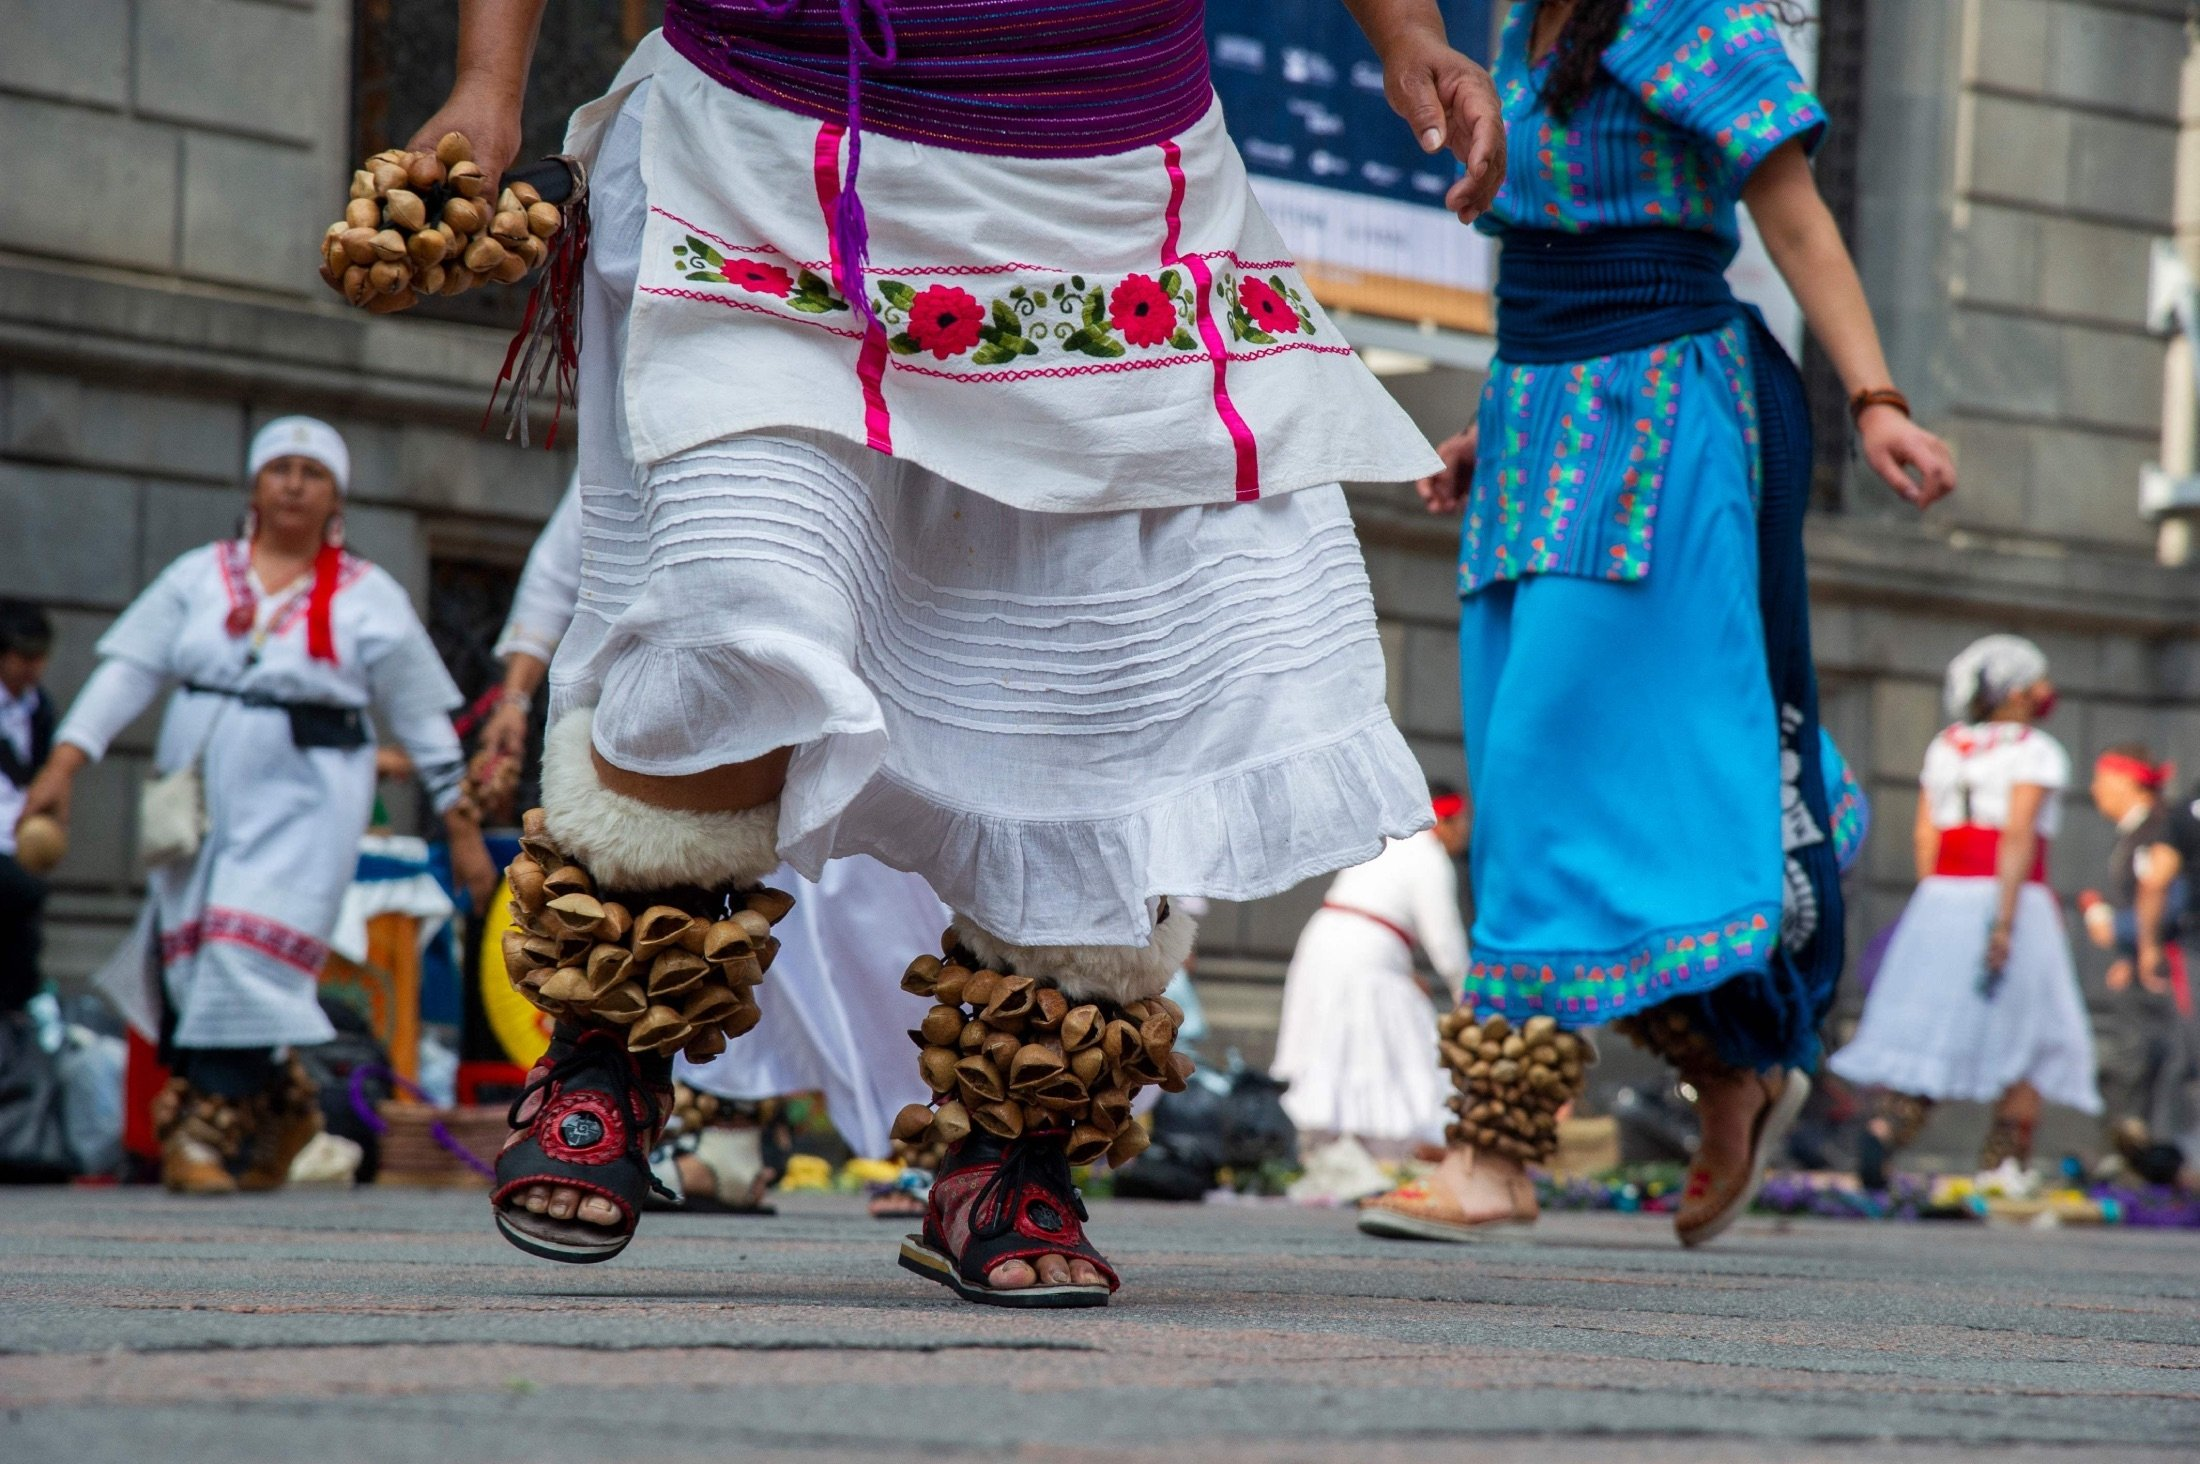 People perform an Aztec dance at the historical Center in Mexico City, Mexico, July 31, 2021. (AFP Photo)